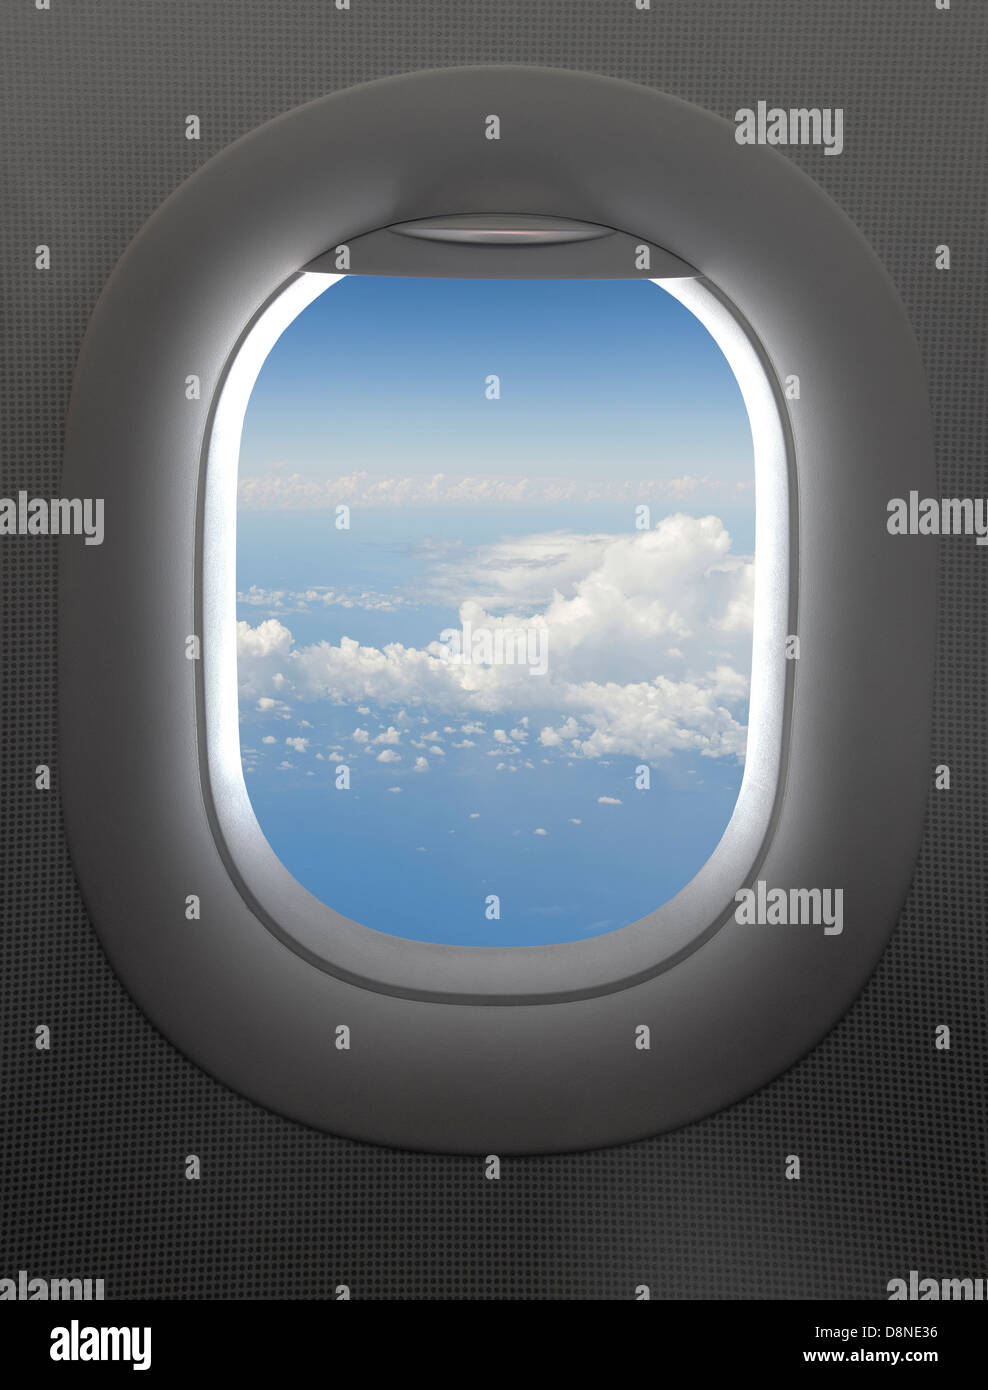 View through an airplane window, clouds - Stock Image